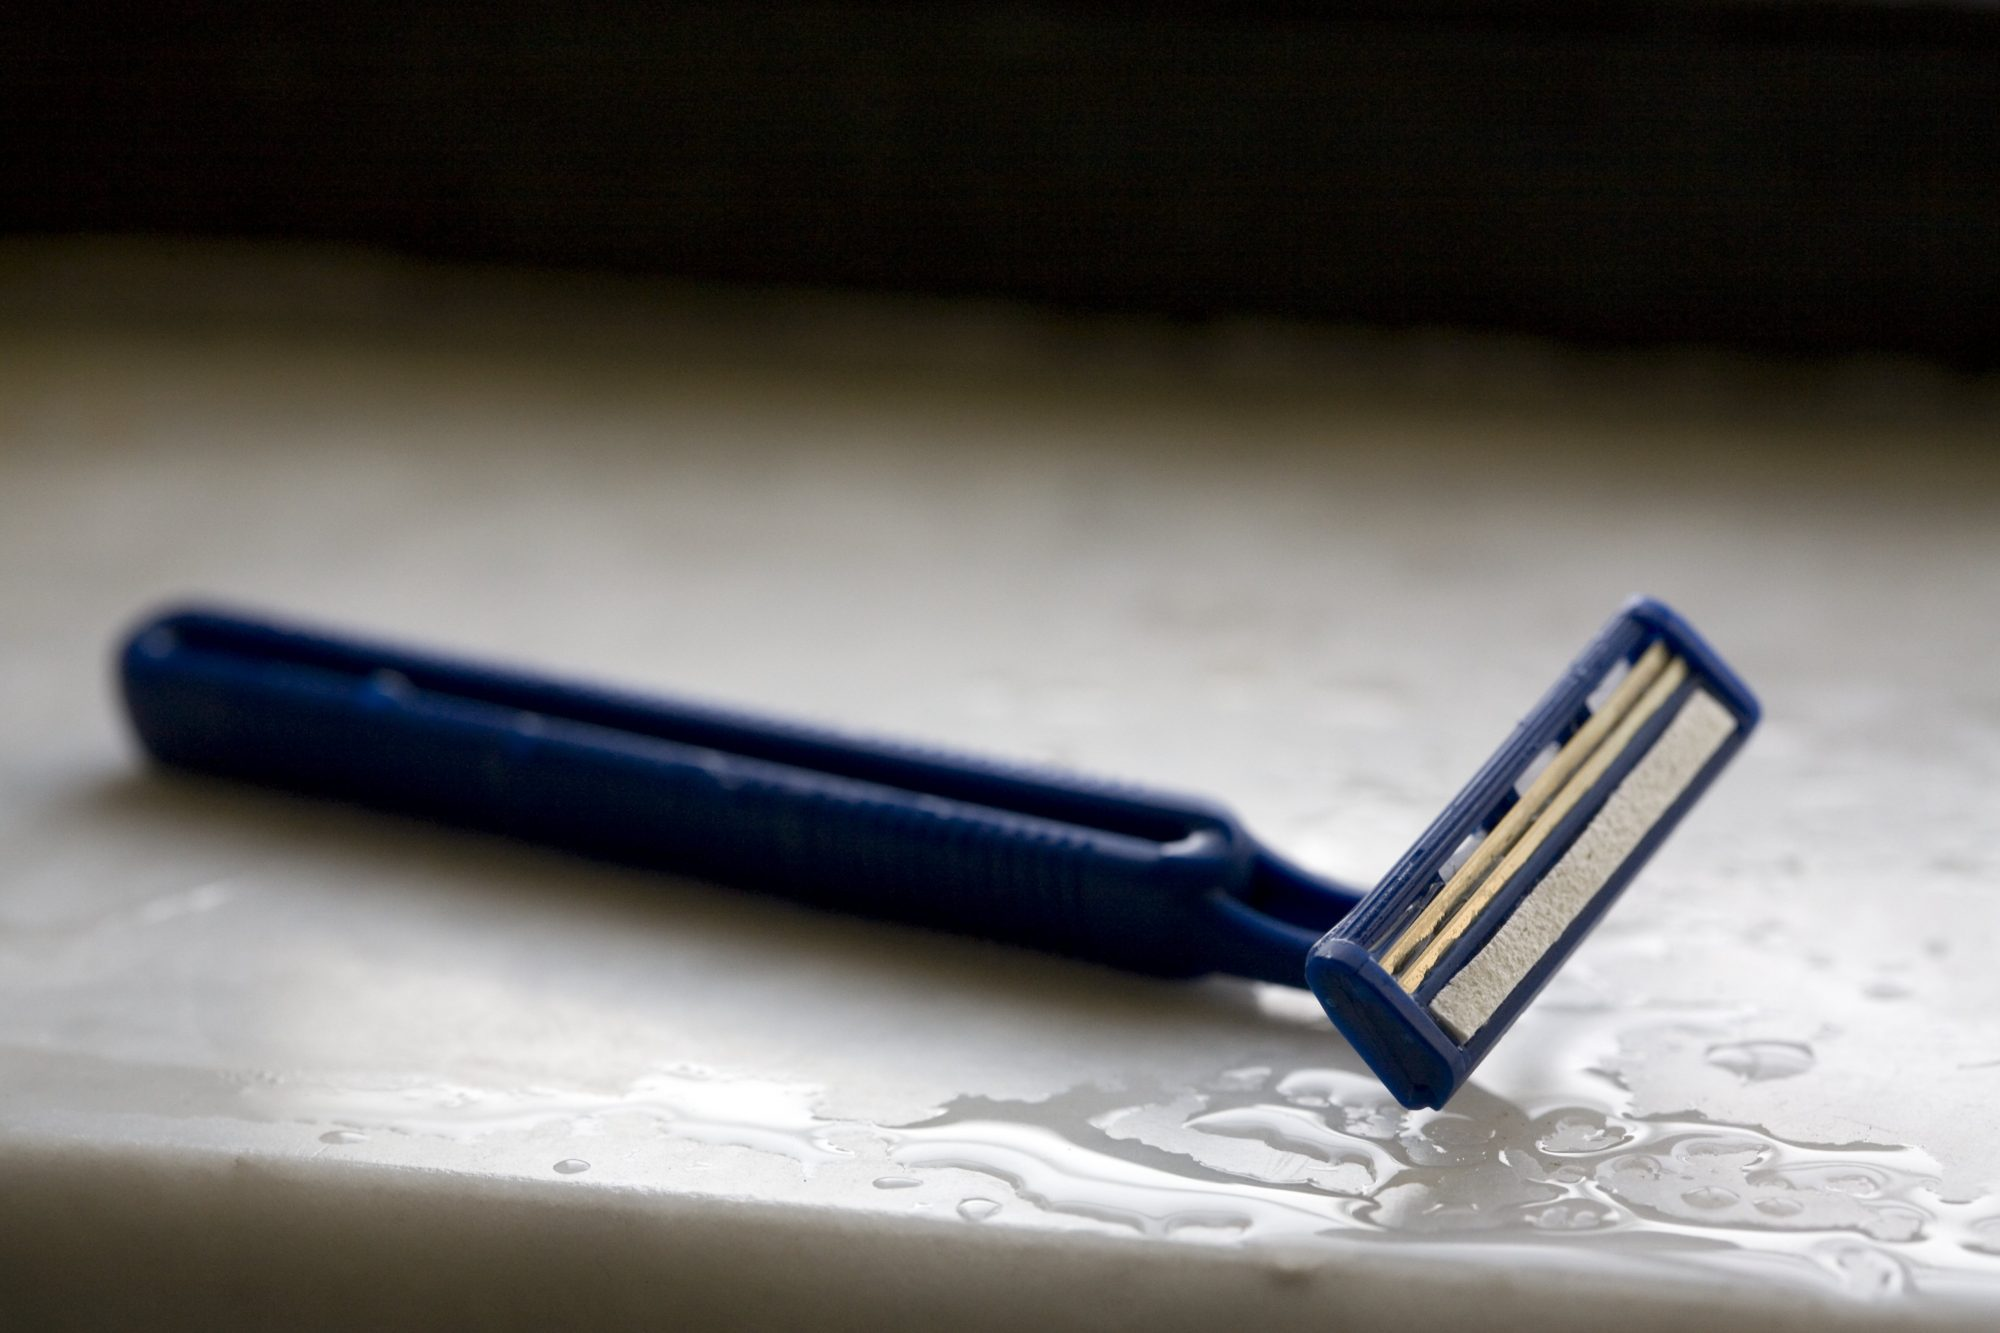 Disposable razor on wet surface, close-up